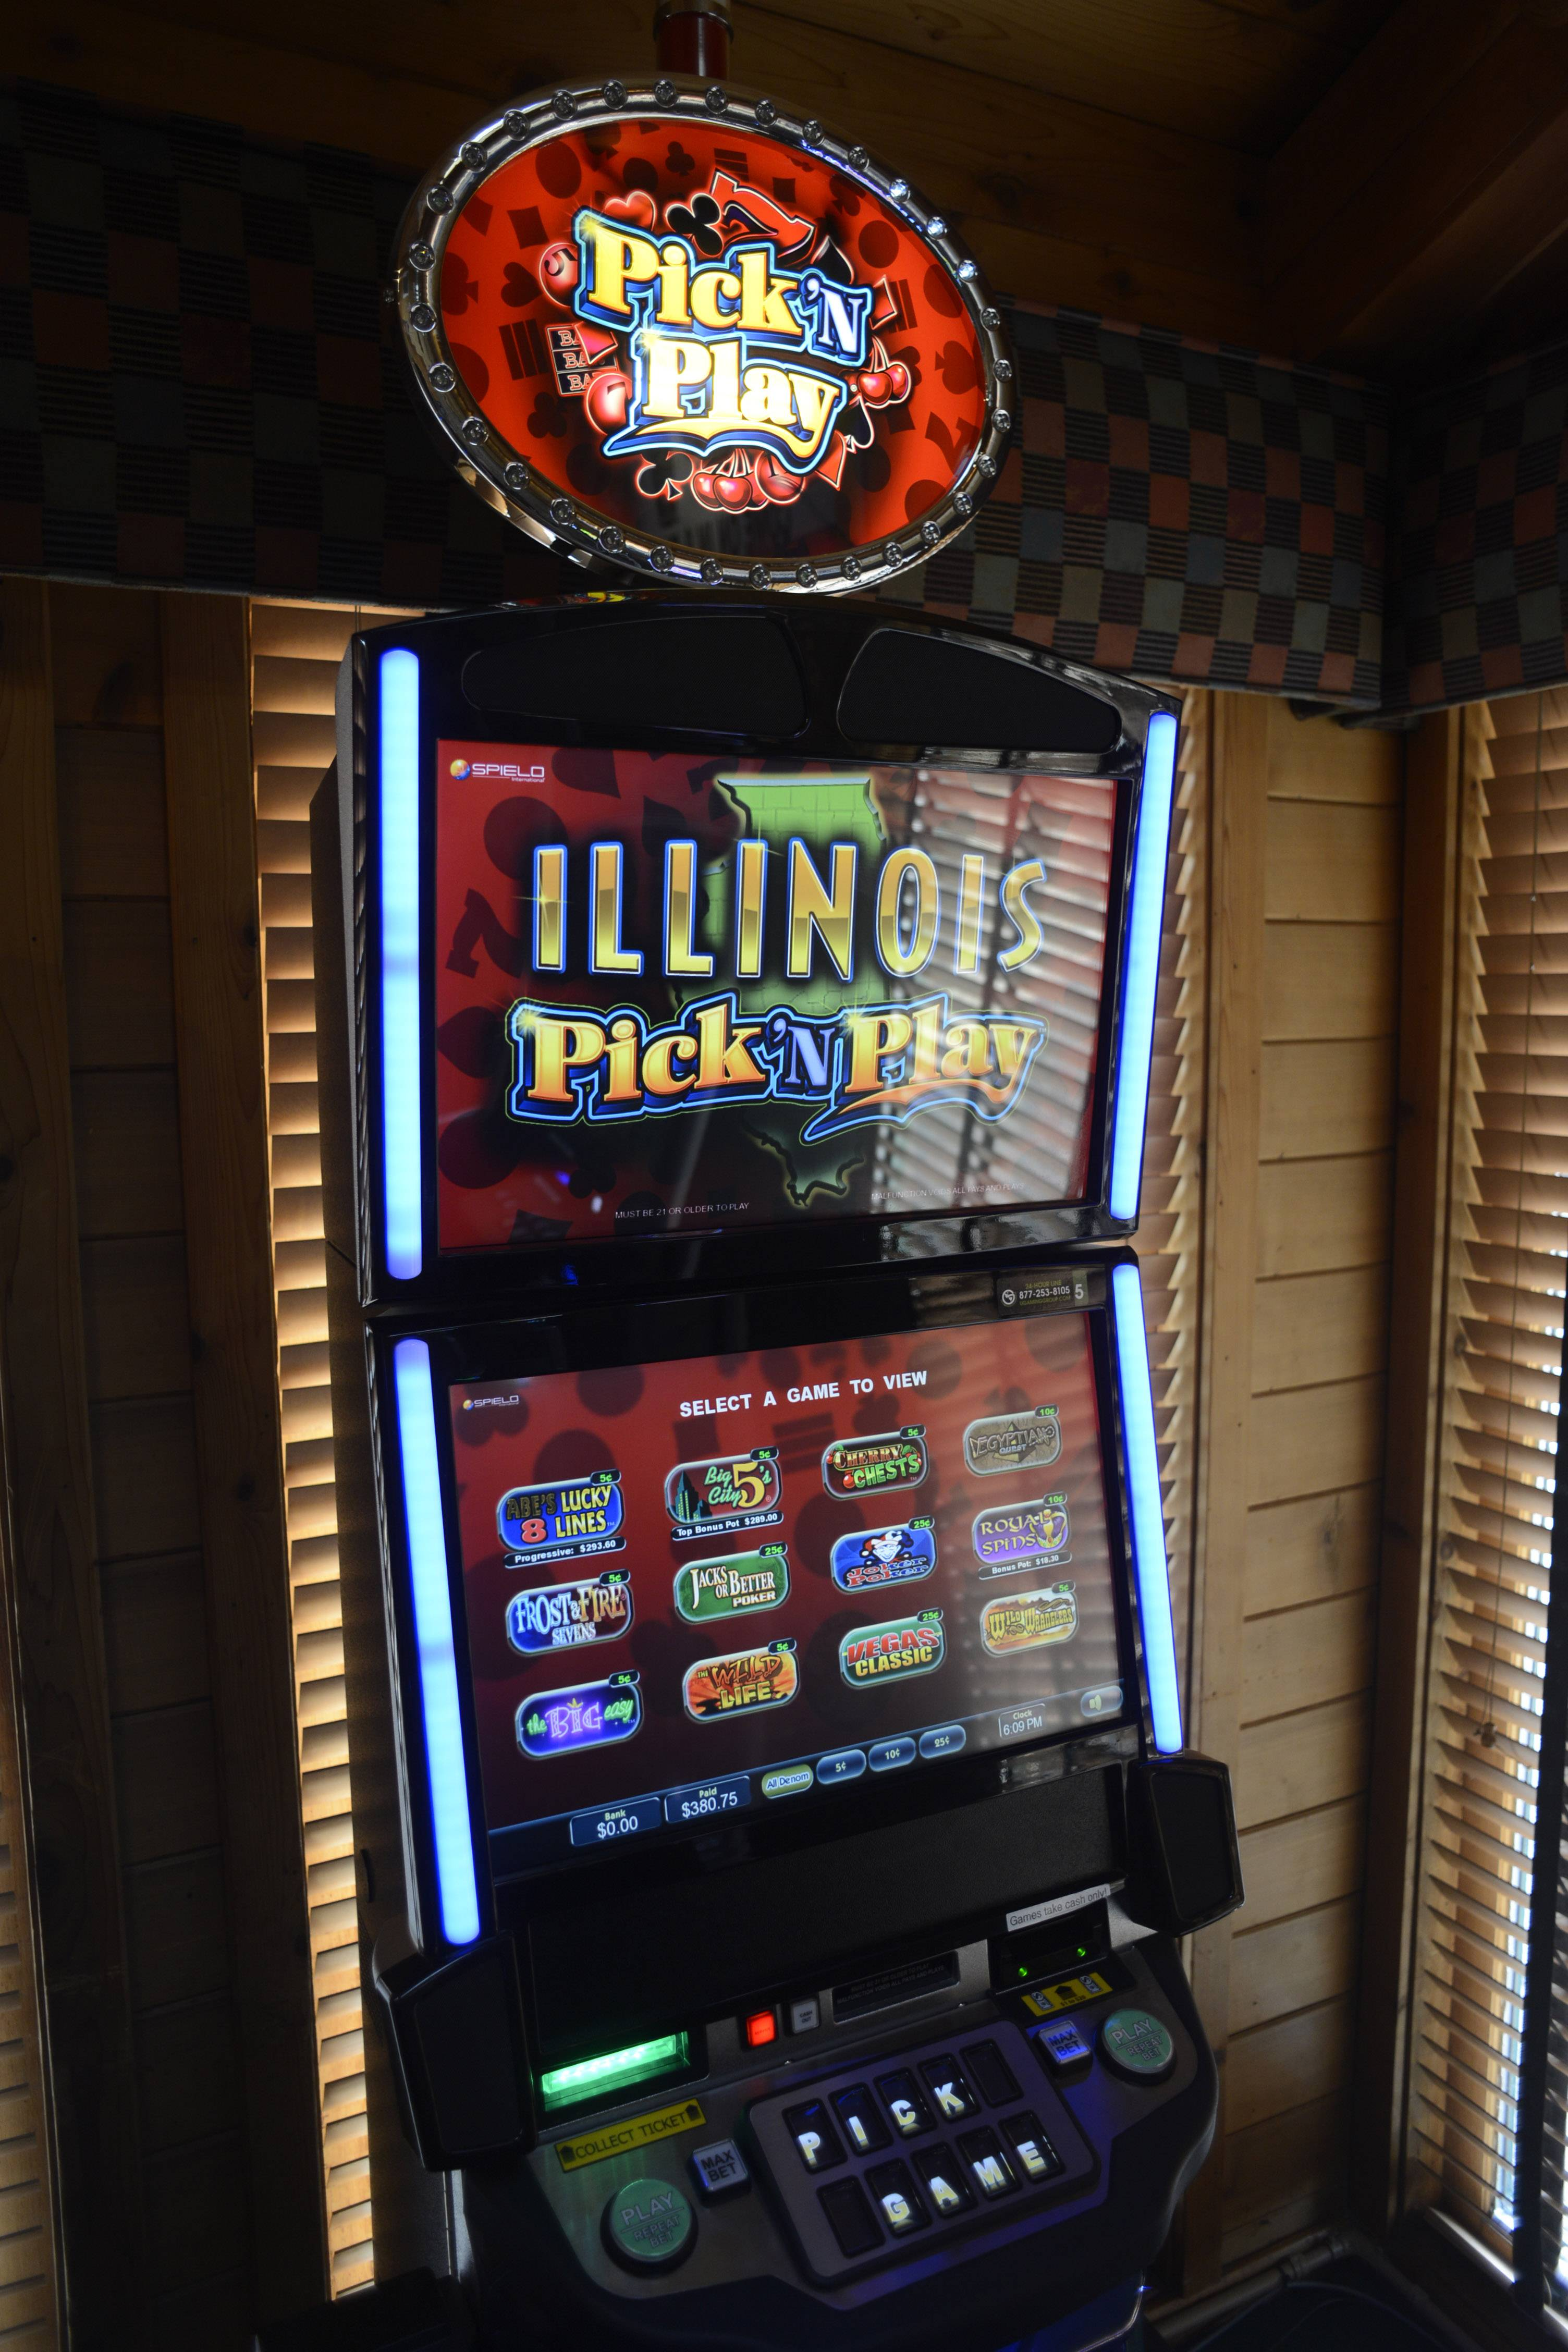 Libertyville trustees to reconsider video gambling ban